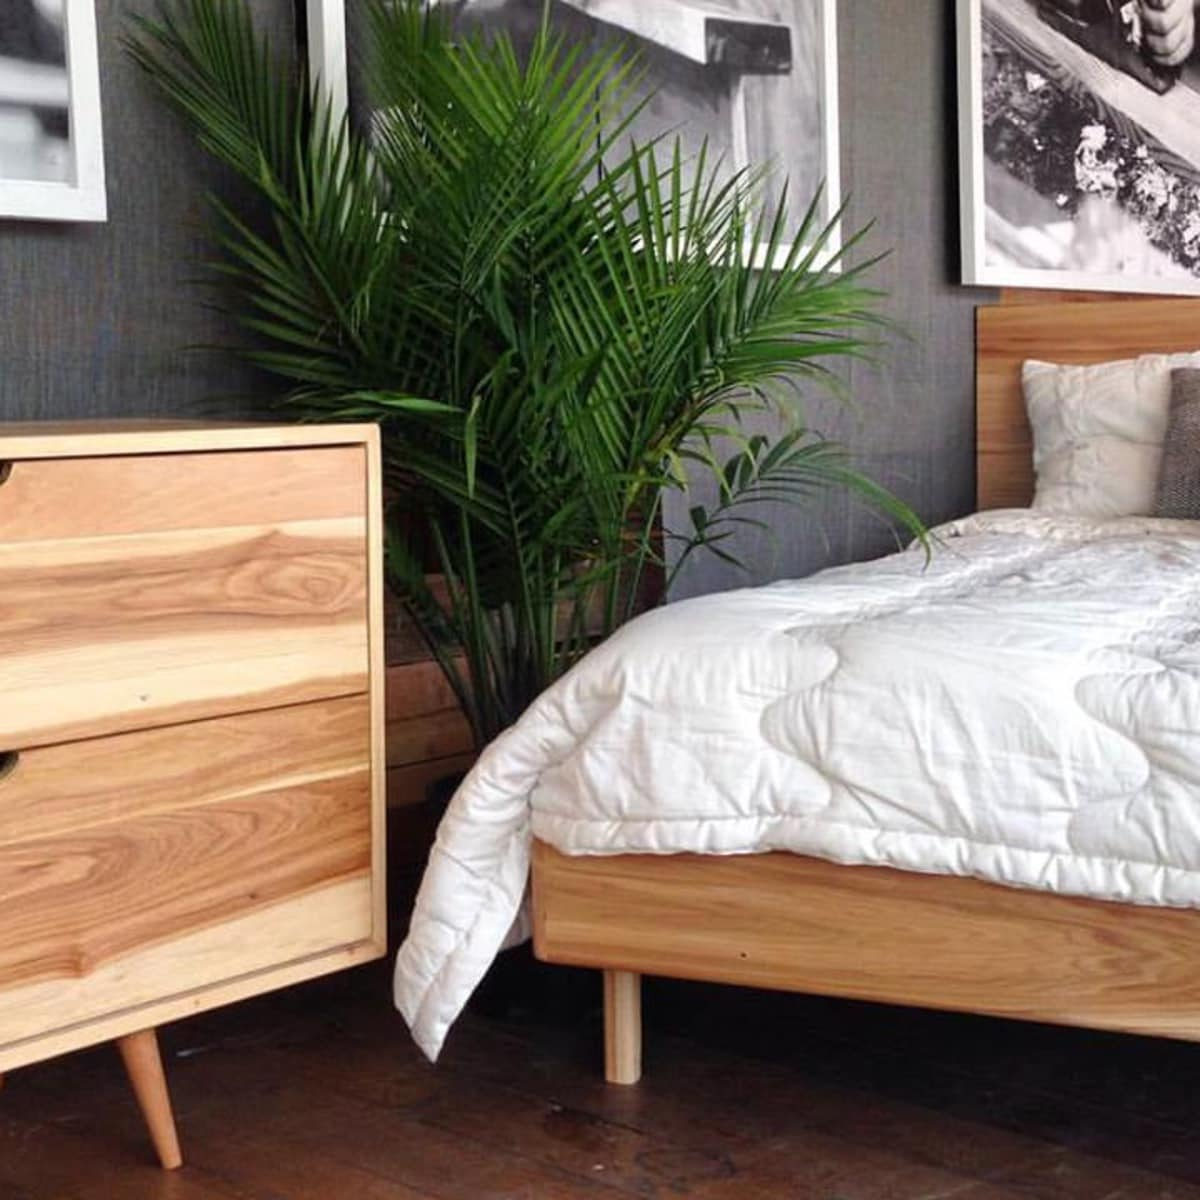 Eco Friendly Furniture Throughout New Living Furniture Made Eco Friendly Stylish Sustainable Houstons Top Ecofriendly Stores